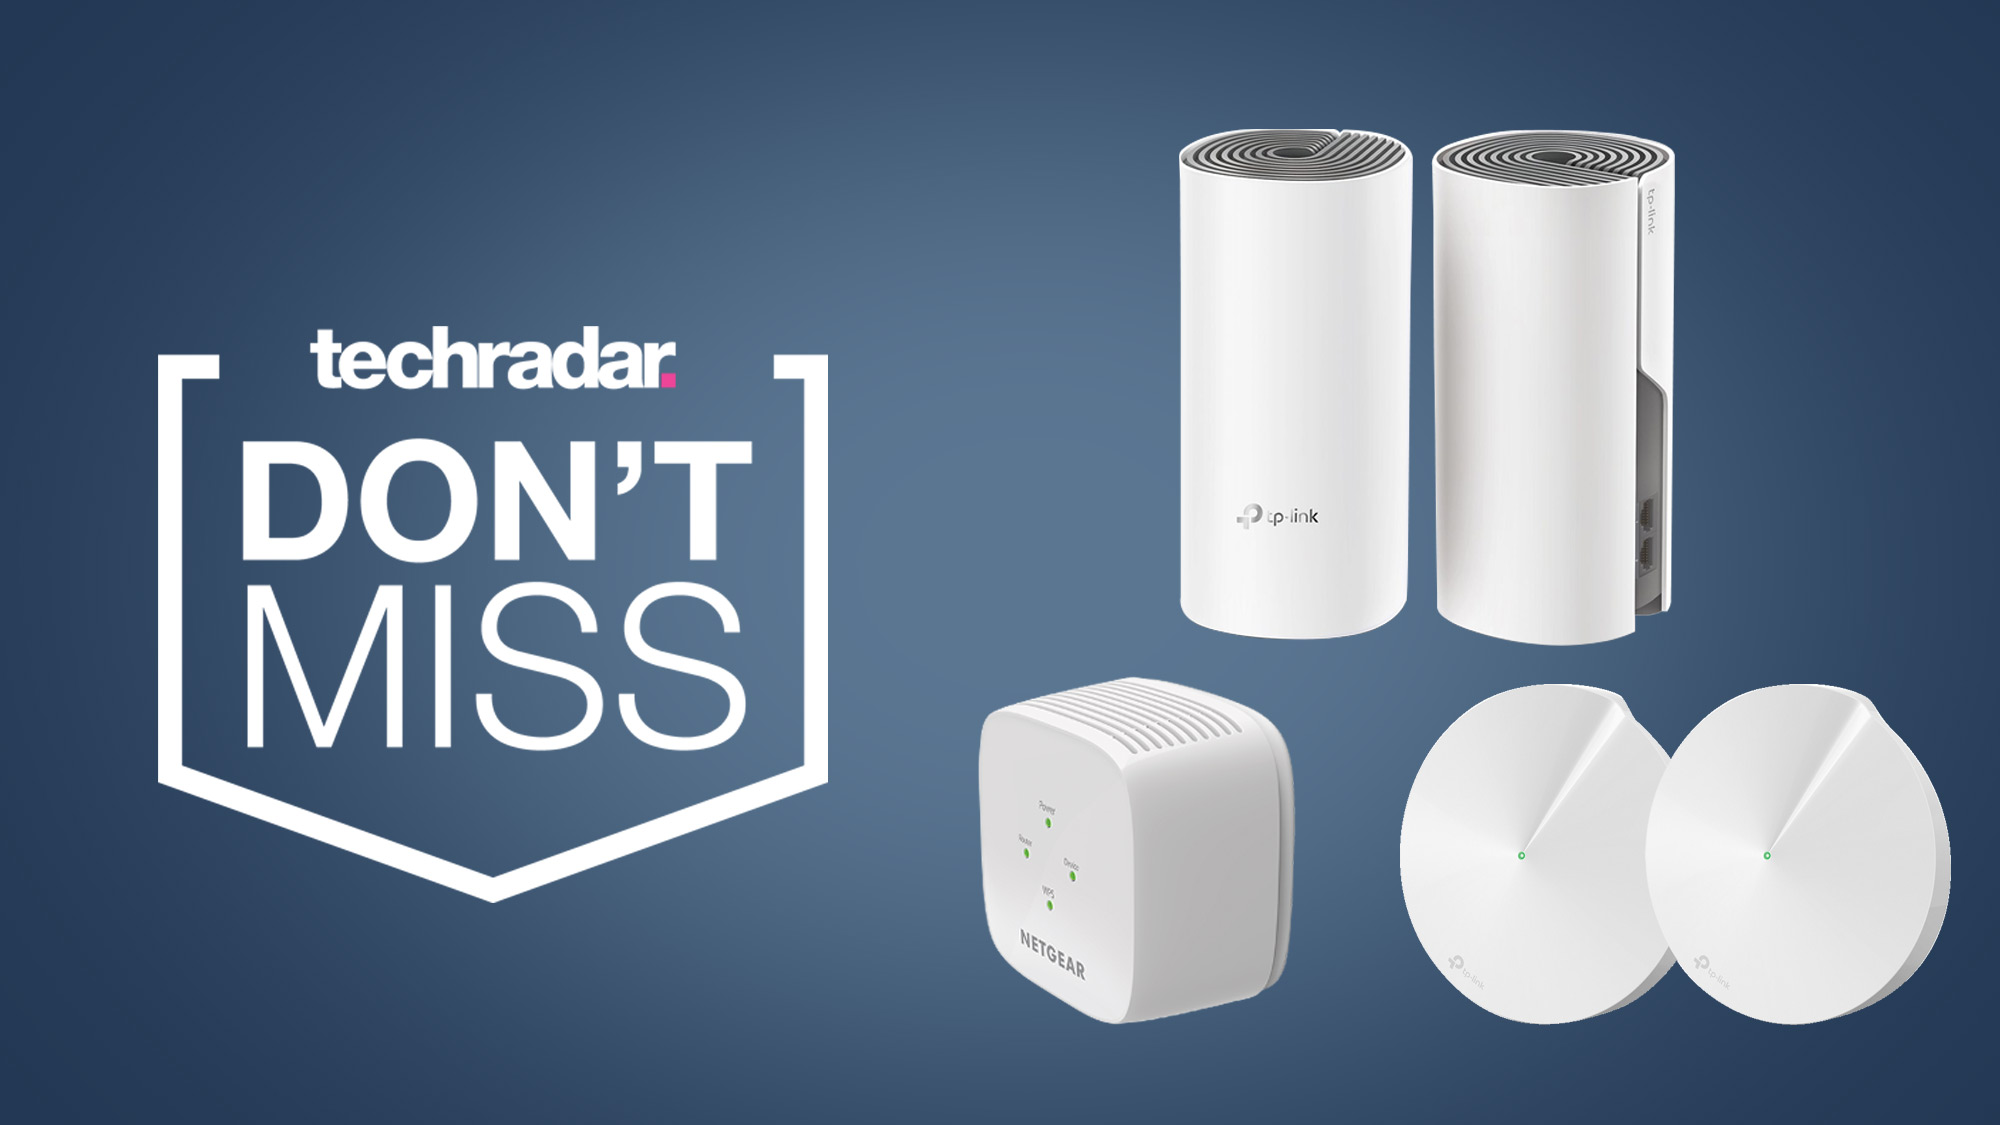 Working from home? Make sure your internet can handle it with cheap WiFi extender deals